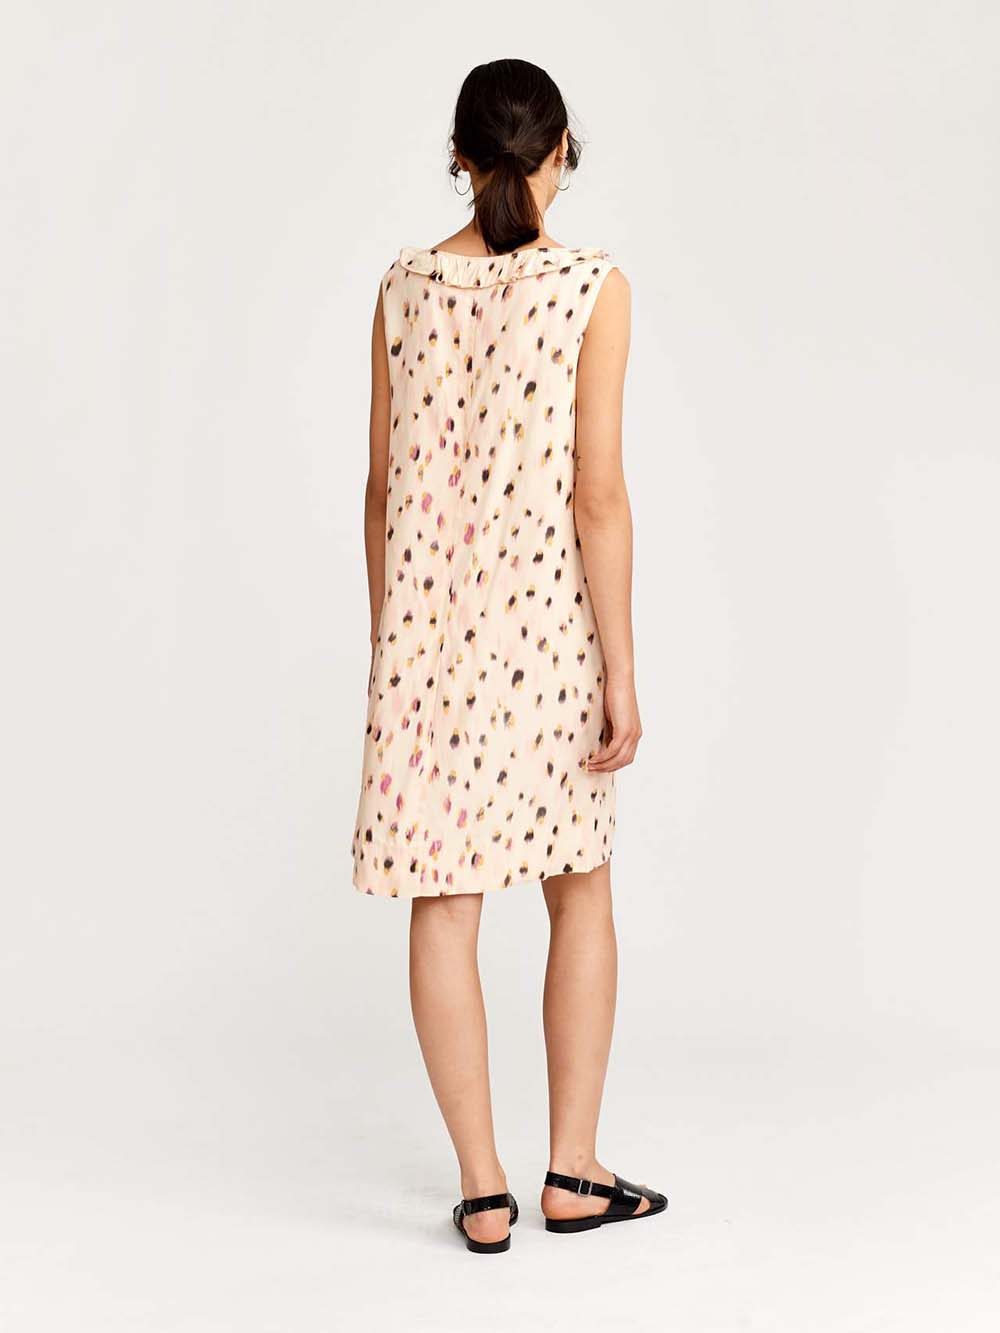 bellerose house dress in c.1